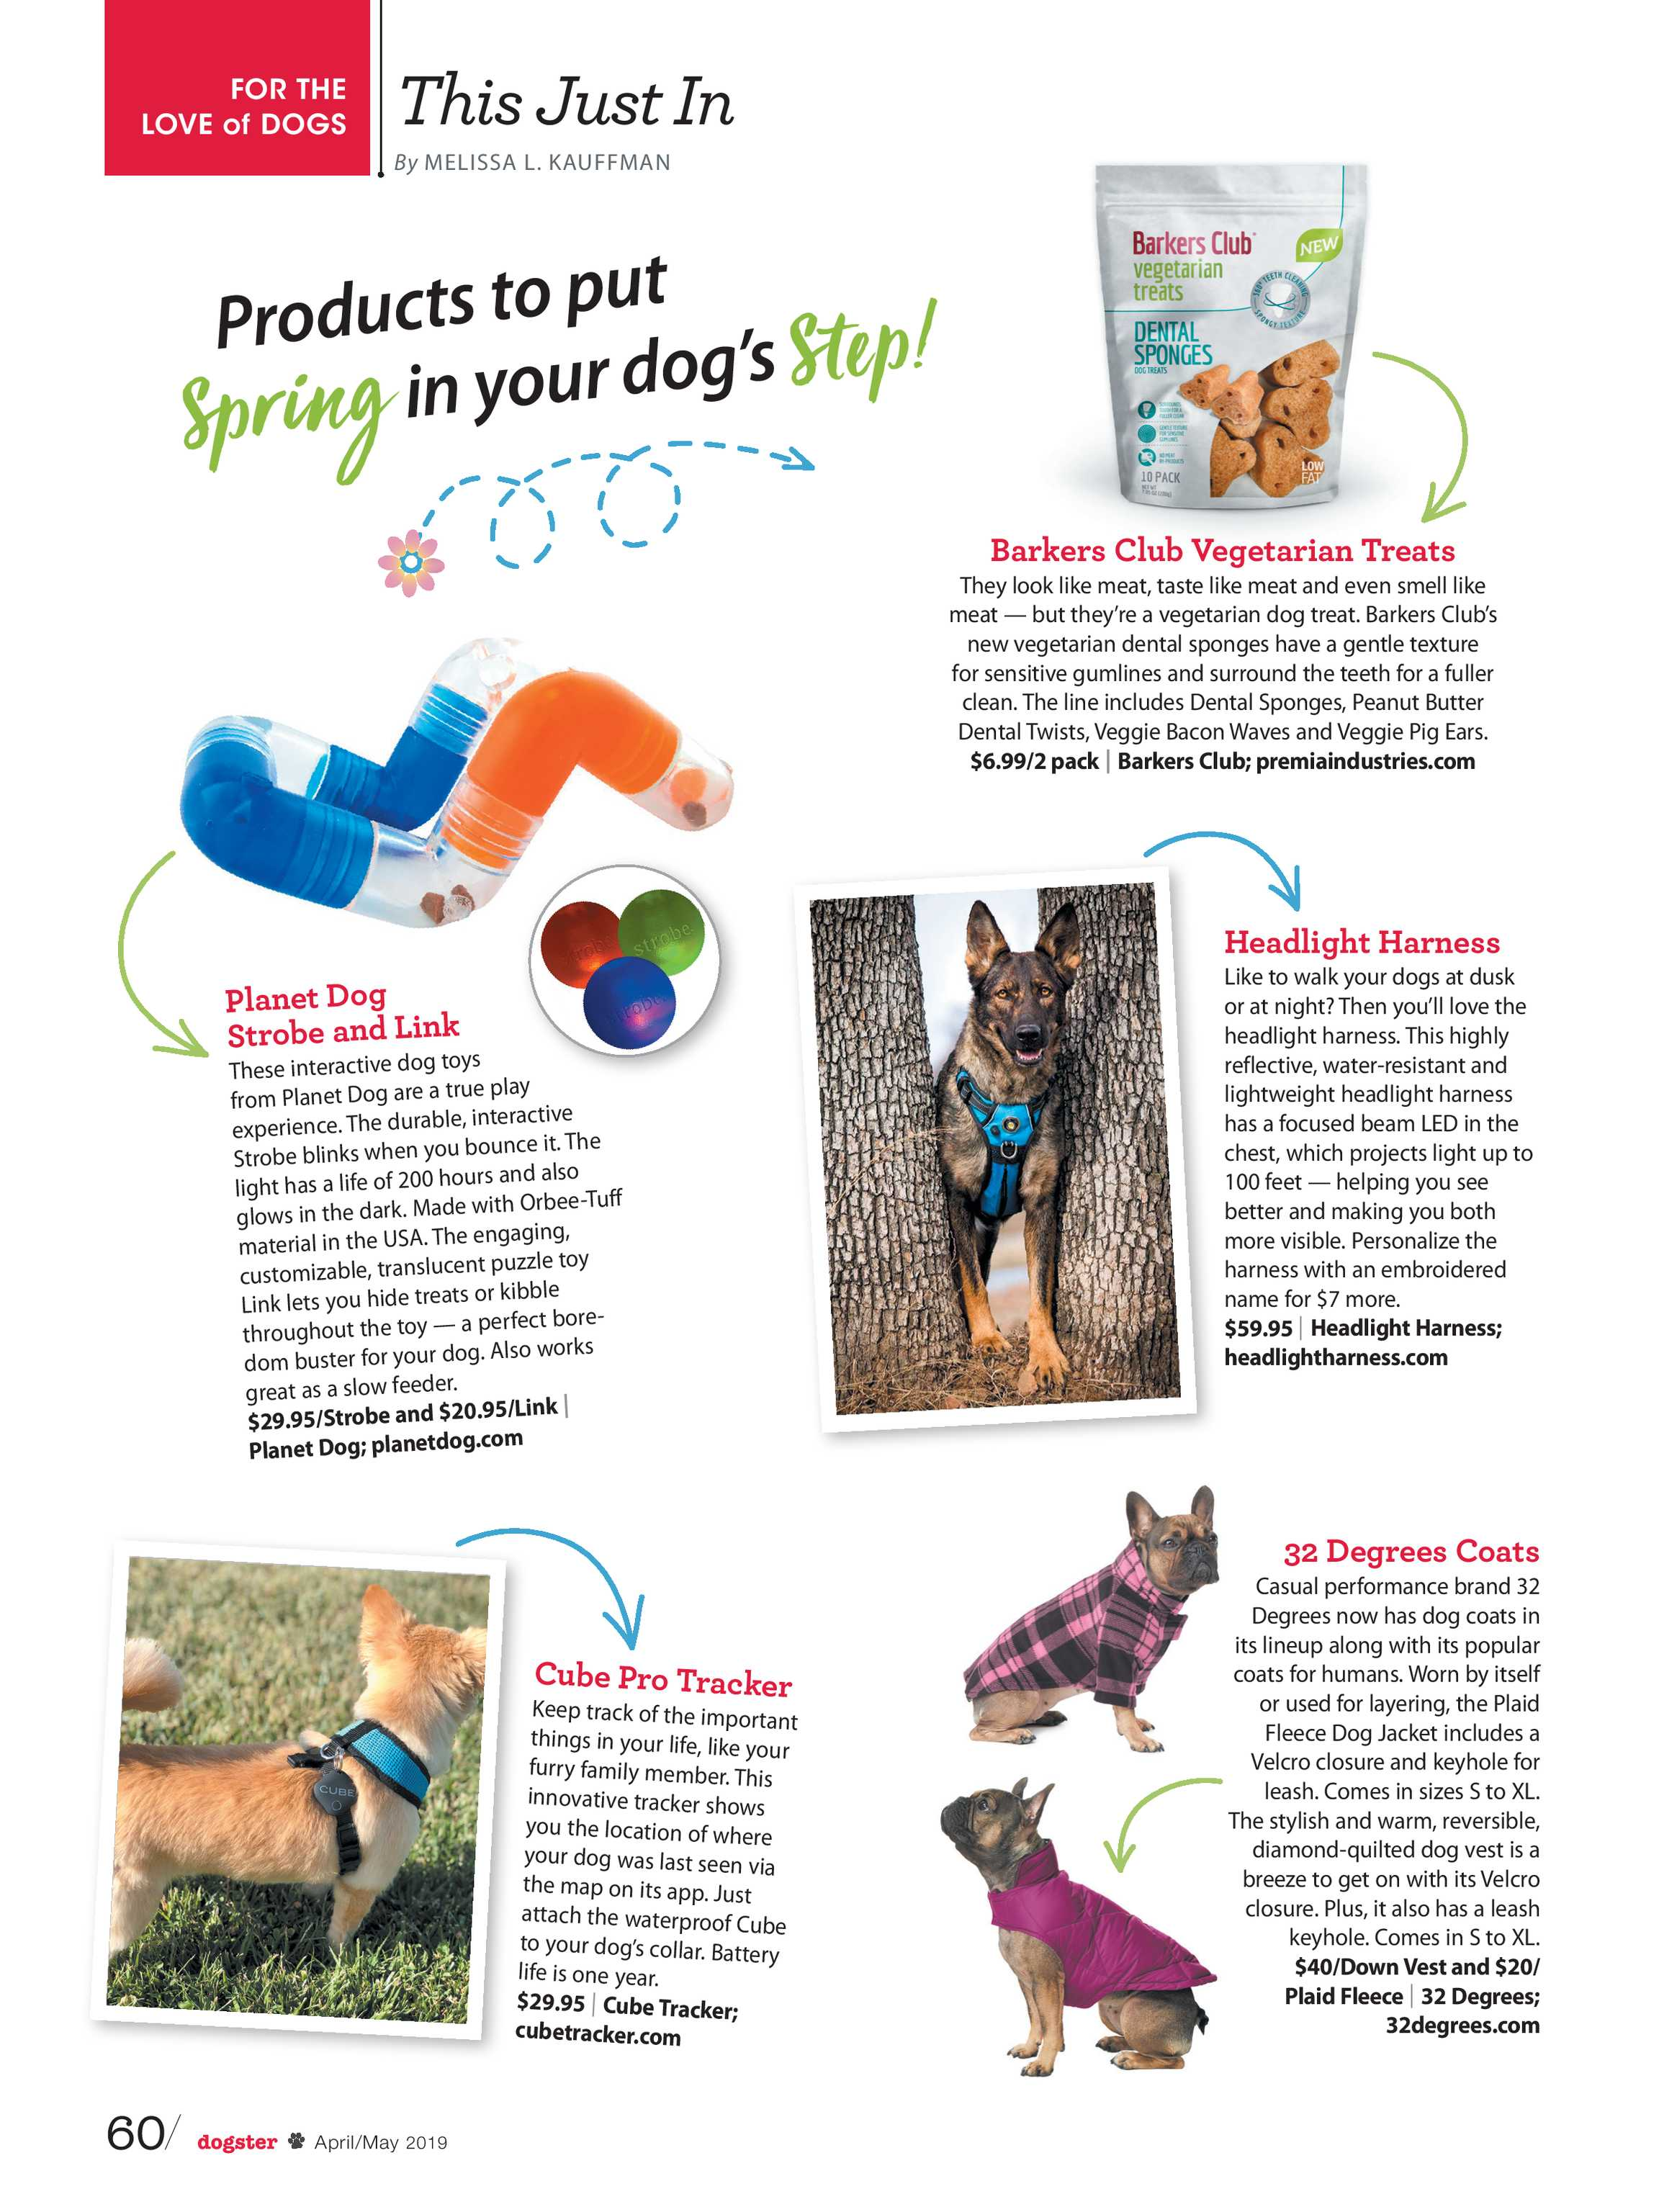 Dogster Magazine - April / May 2019 - page 60